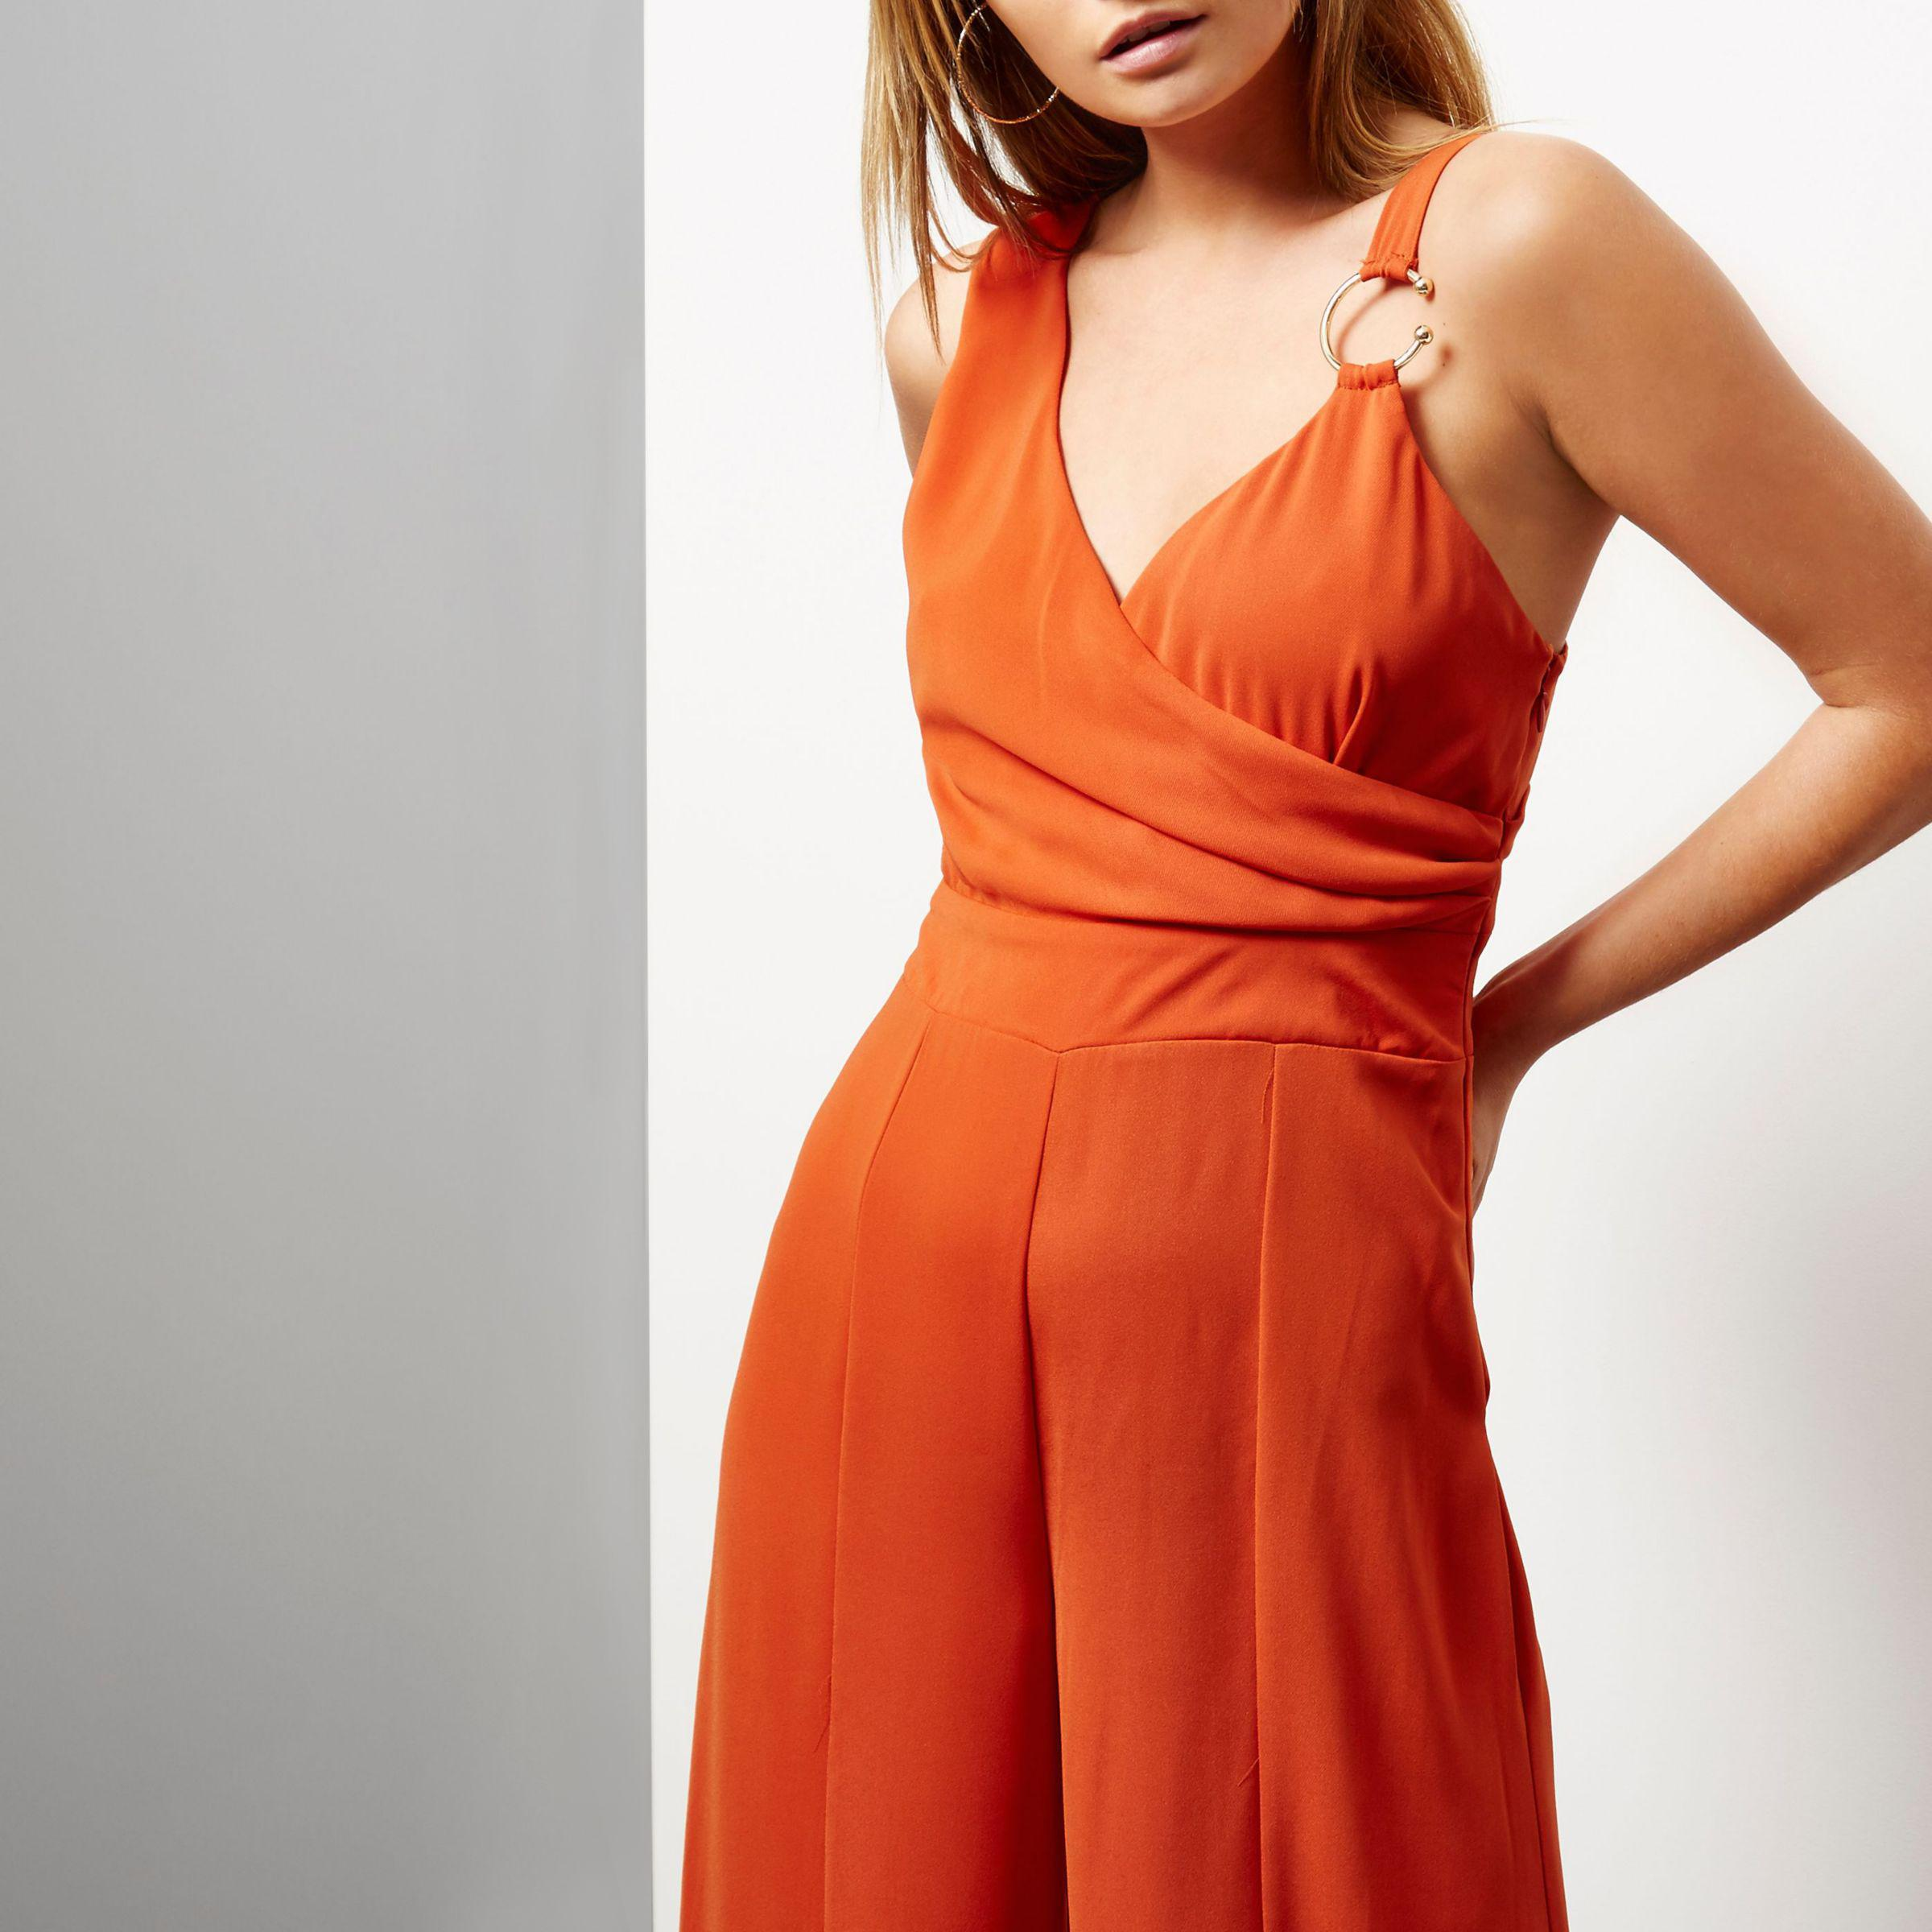 c0a8bba509 Lyst - River Island Orange Draped Wide Leg Jumpsuit in Orange